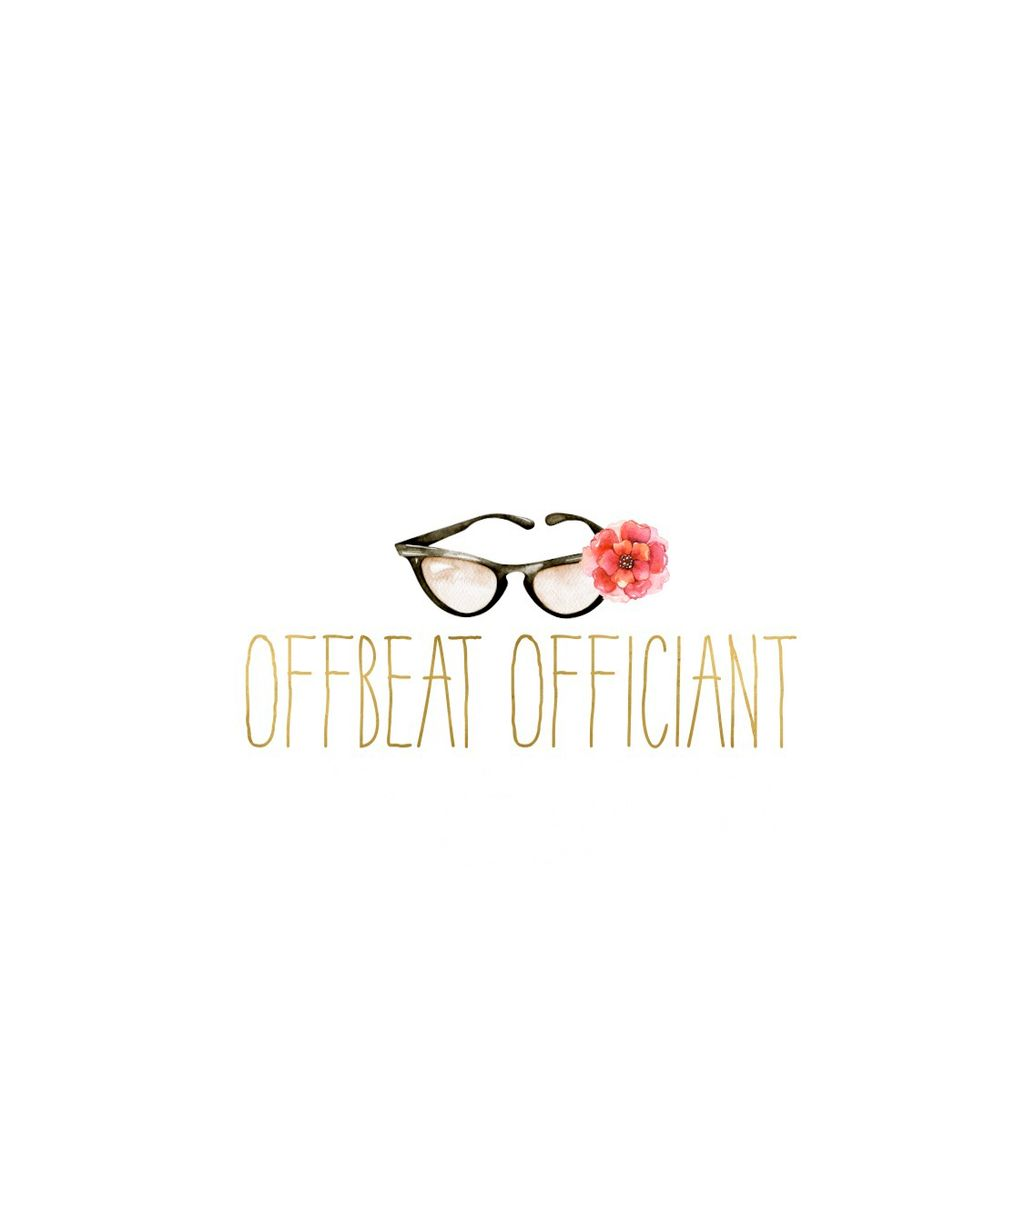 OFFBEAT OFFICIANT